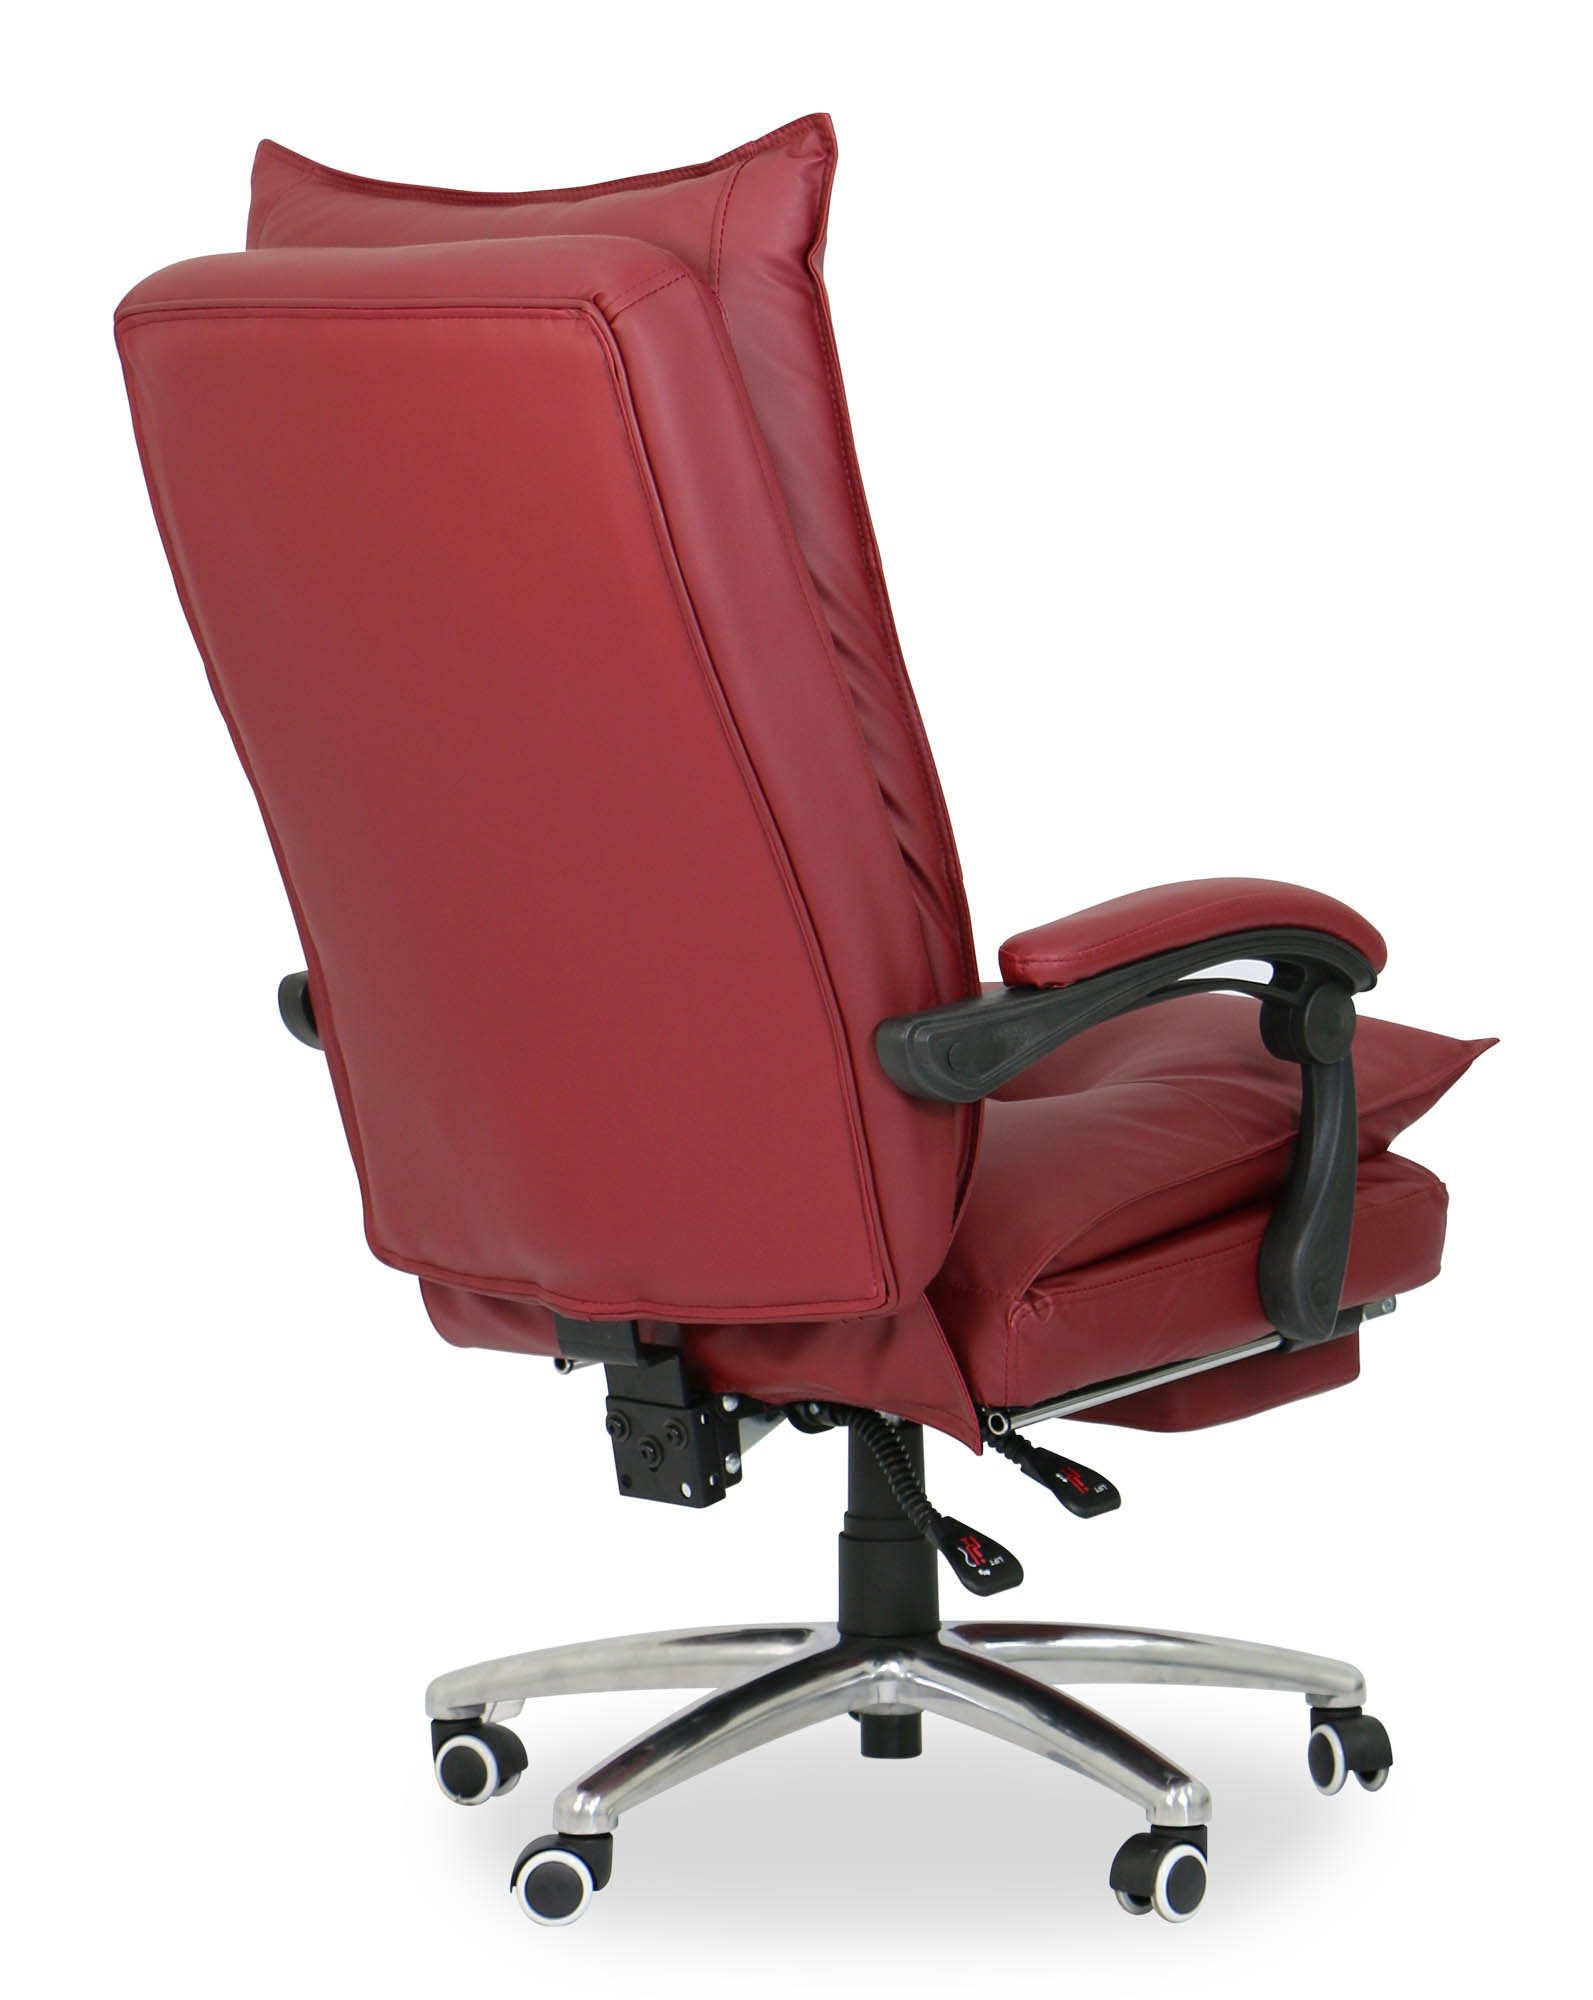 comfort office chair. Deluxe Pu Executive Office Chair (Maroon) | Furniture \u0026 Home Décor FortyTwo Comfort C